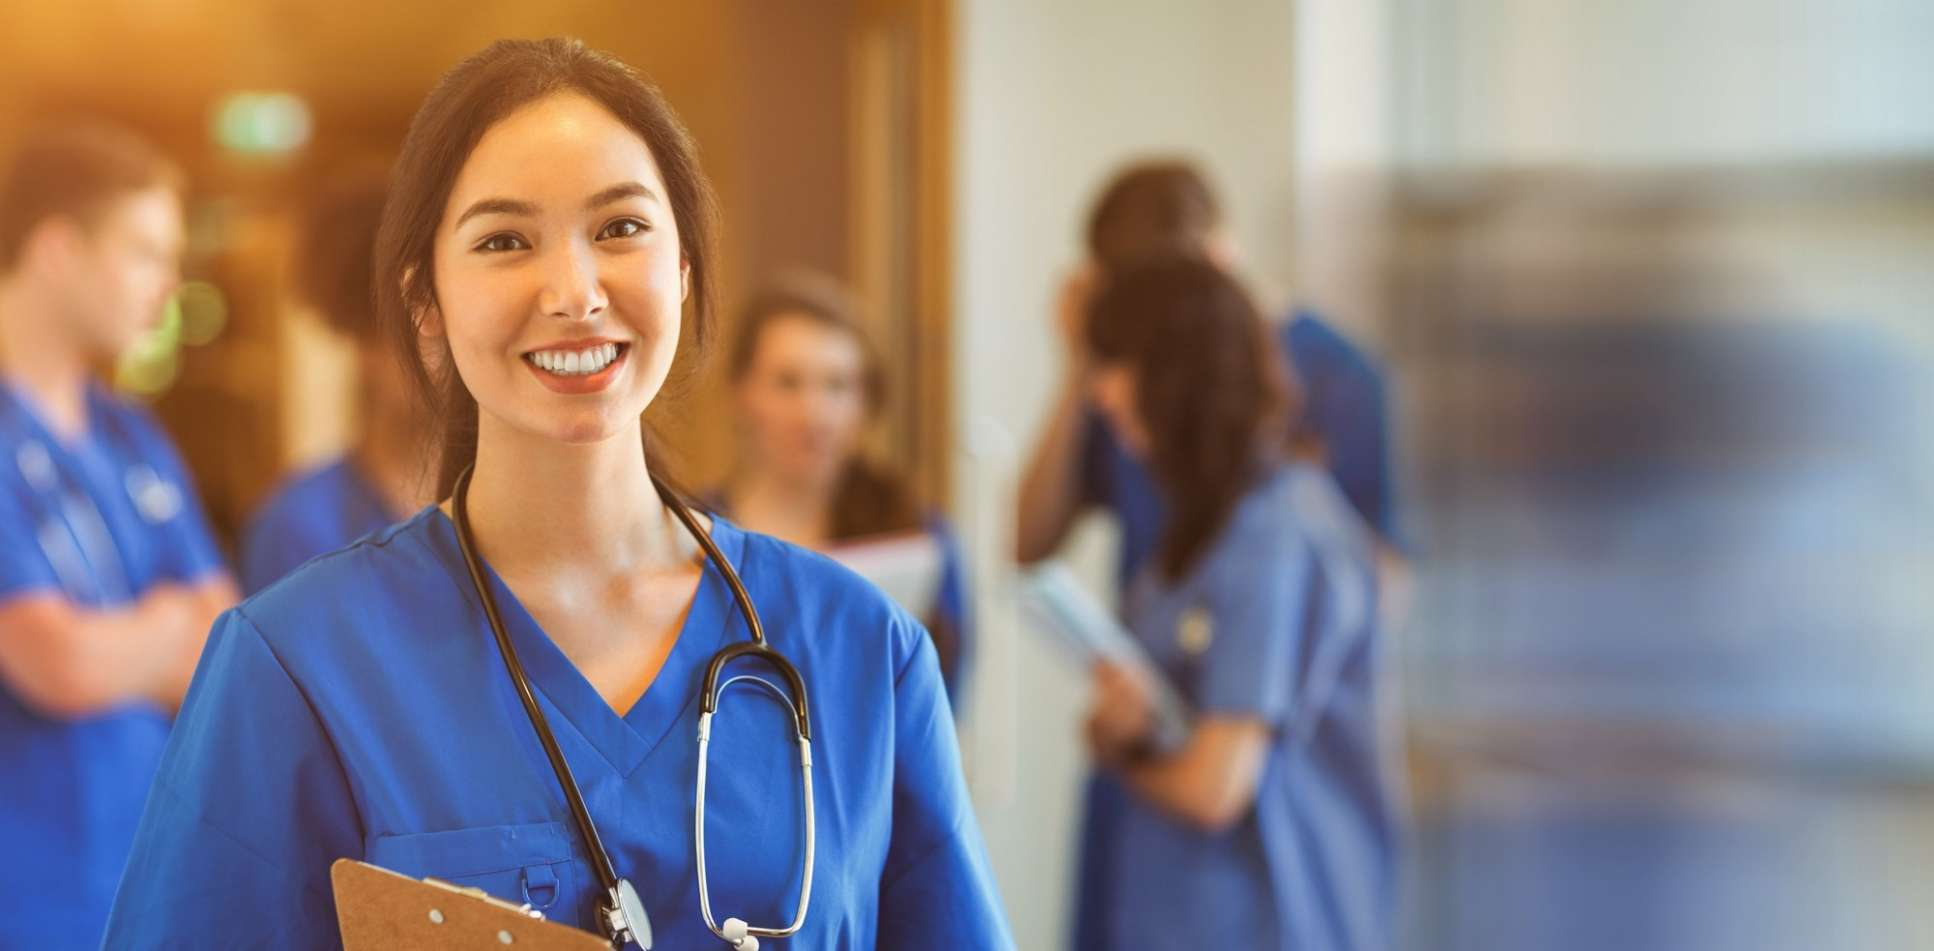 Educating the Next Generation of Health Professionals